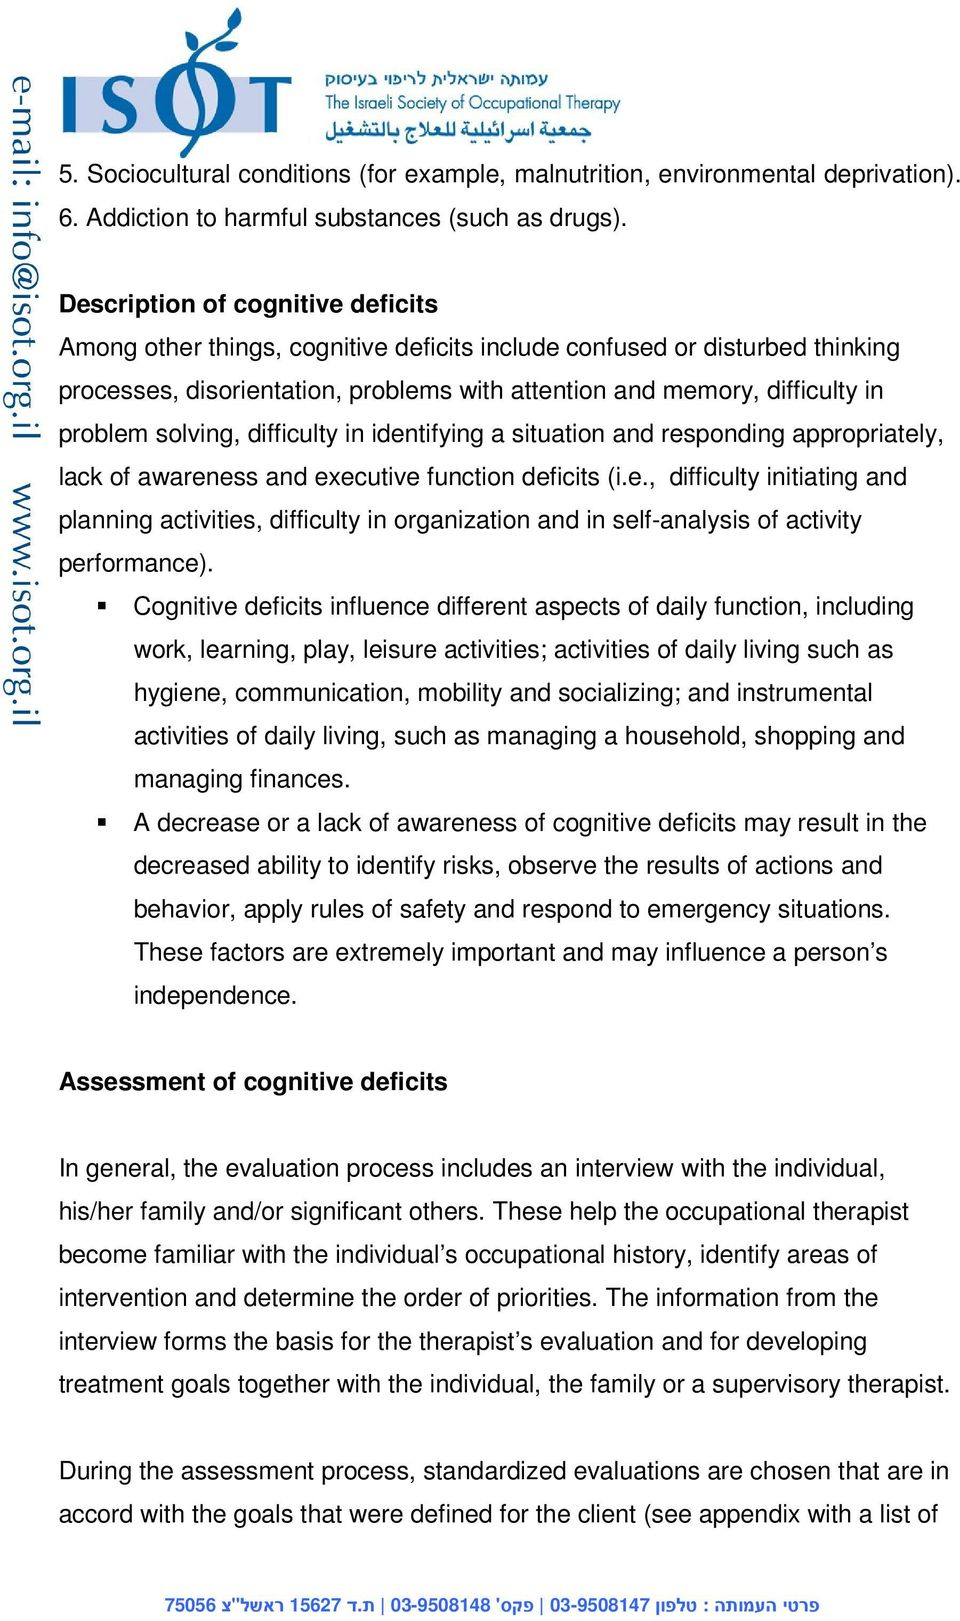 solving, difficulty in identifying a situation and responding appropriately, lack of awareness and executive function deficits (i.e., difficulty initiating and planning activities, difficulty in organization and in self-analysis of activity performance).